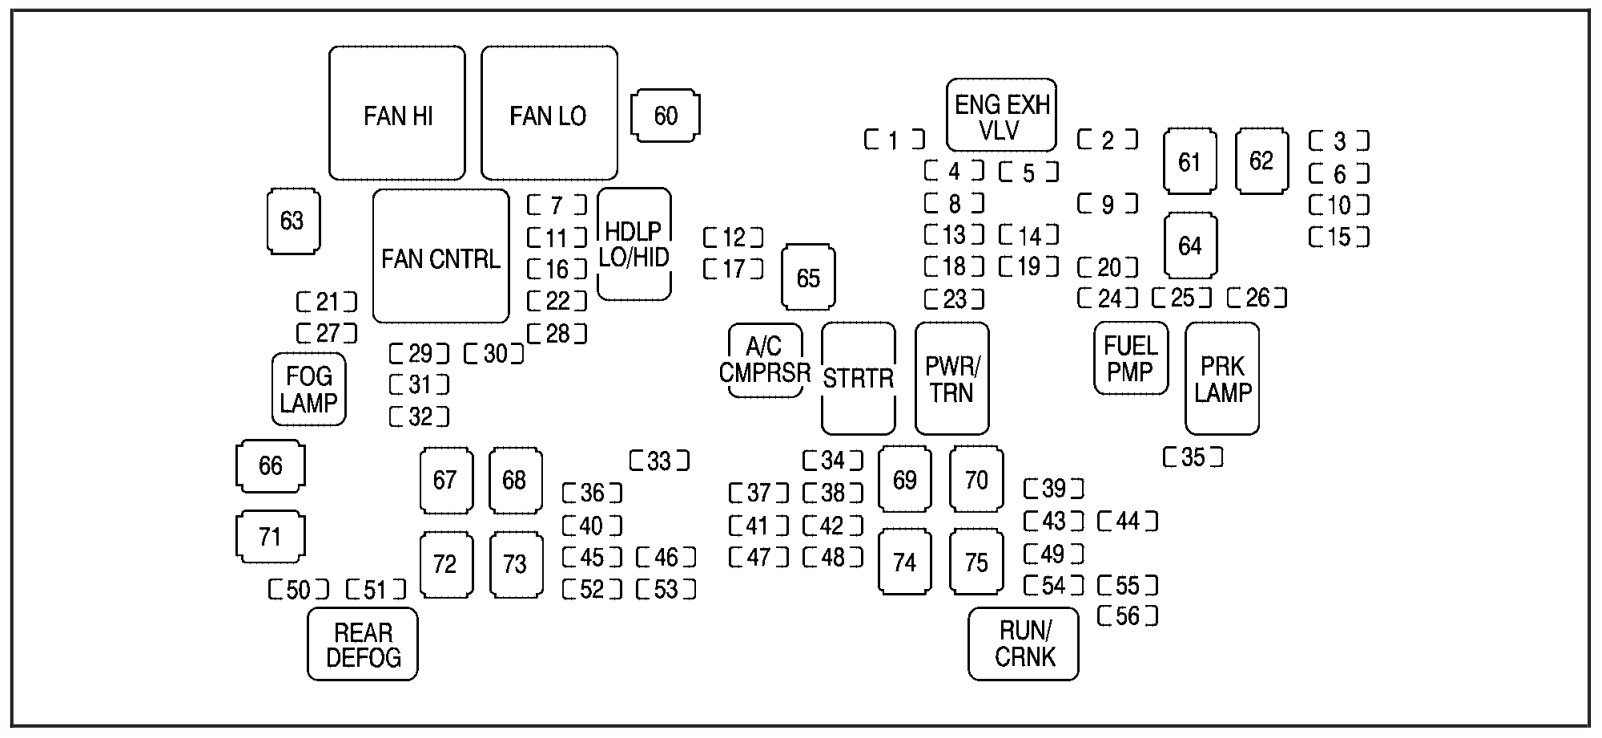 hight resolution of 98 tahoe fuse diagram wiring diagram repair guides2007 tahoe  fuse diagram wiring diagram